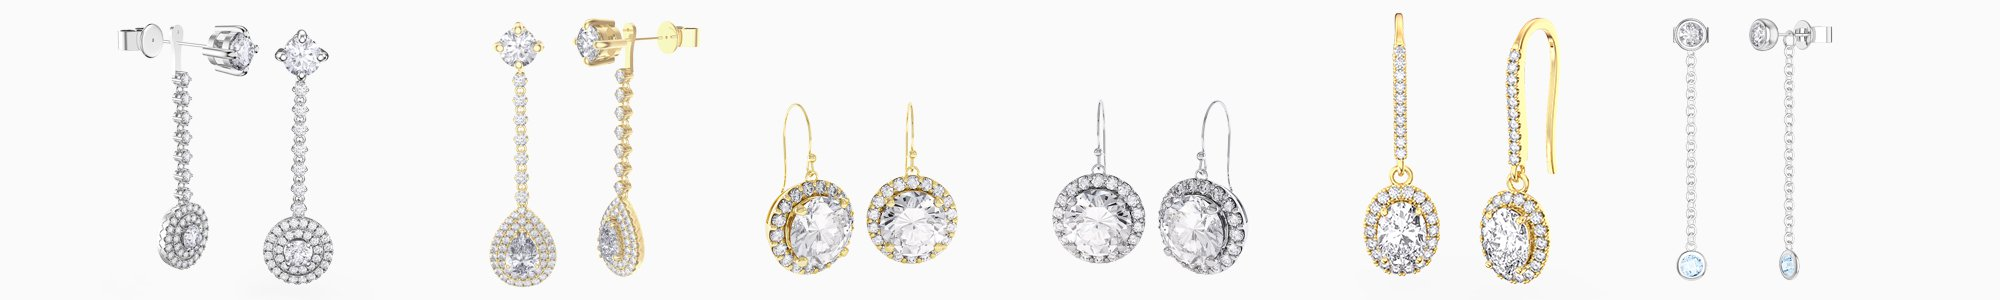 Shop Drop Earrings by Jian London. Buy direct and save from our wide selection of Drop Earrings at the Jian London jewellery Store. Free UK Delivery